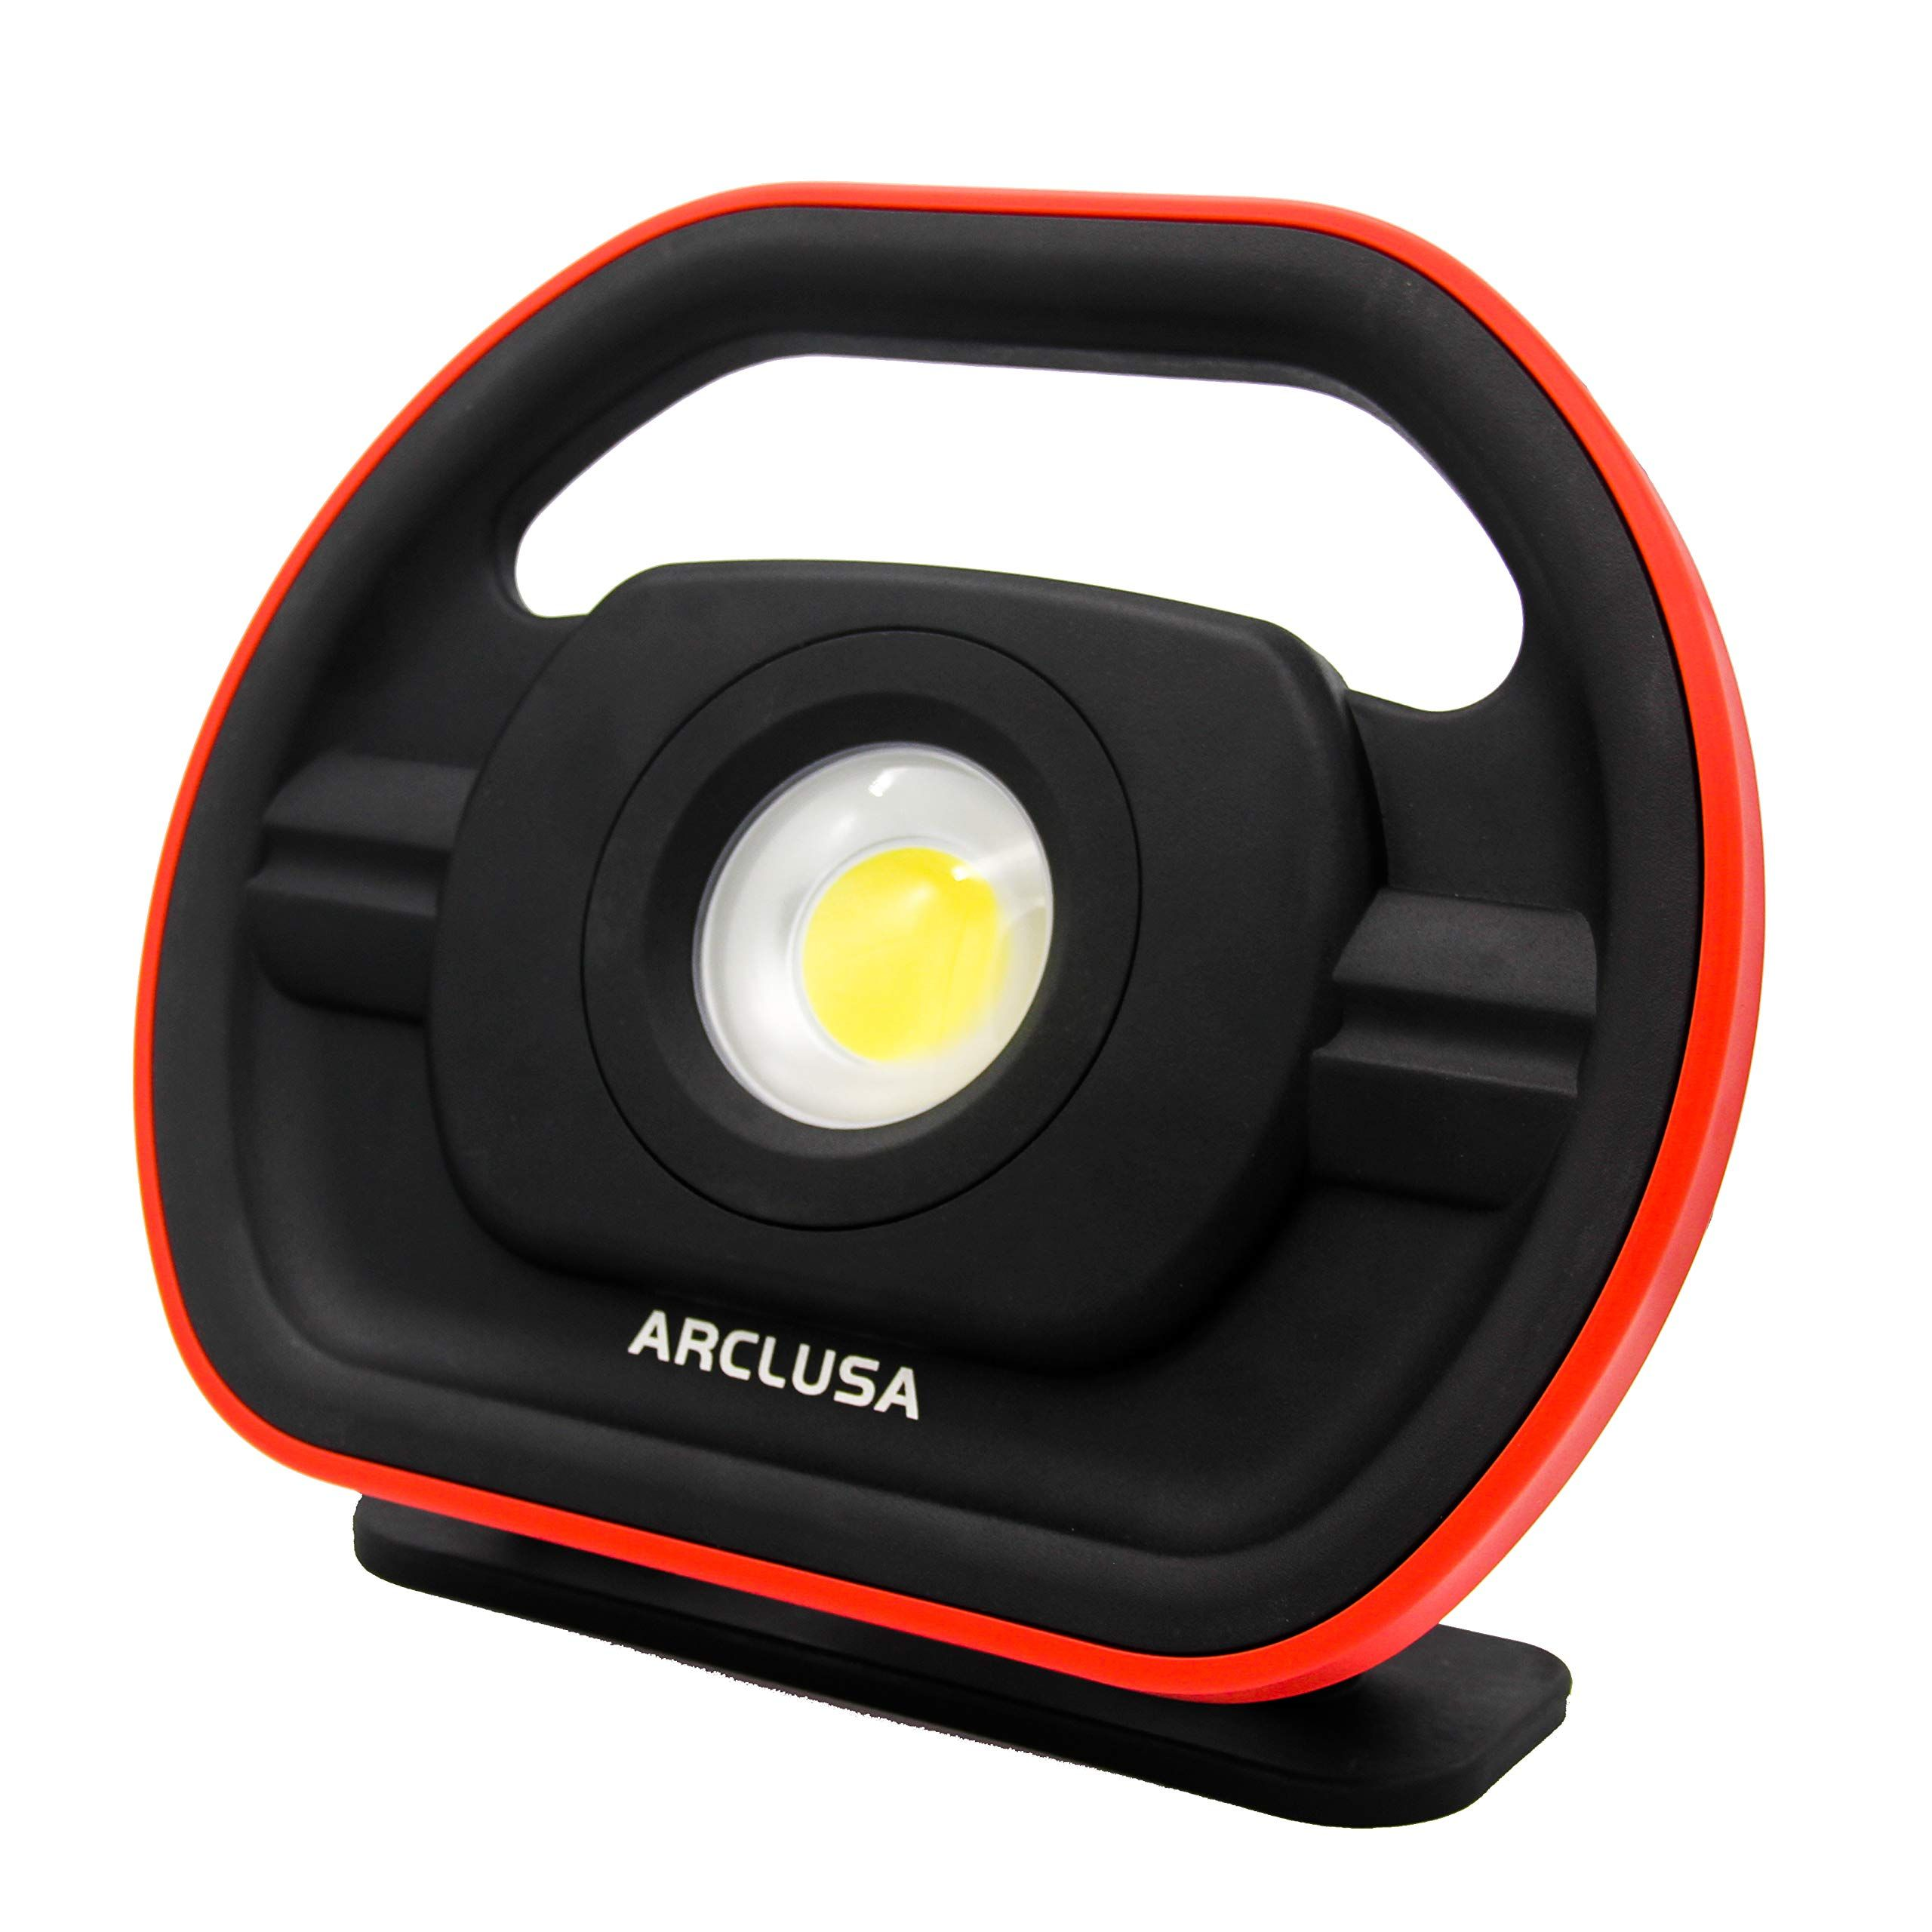 Arclusa Rechargeable Work Light Flood Light W Adjustable Holder And Inspection Lamp 3000 Lumens Extreme Cob L In 2020 Flood Lights Rechargeable Work Light Work Lights